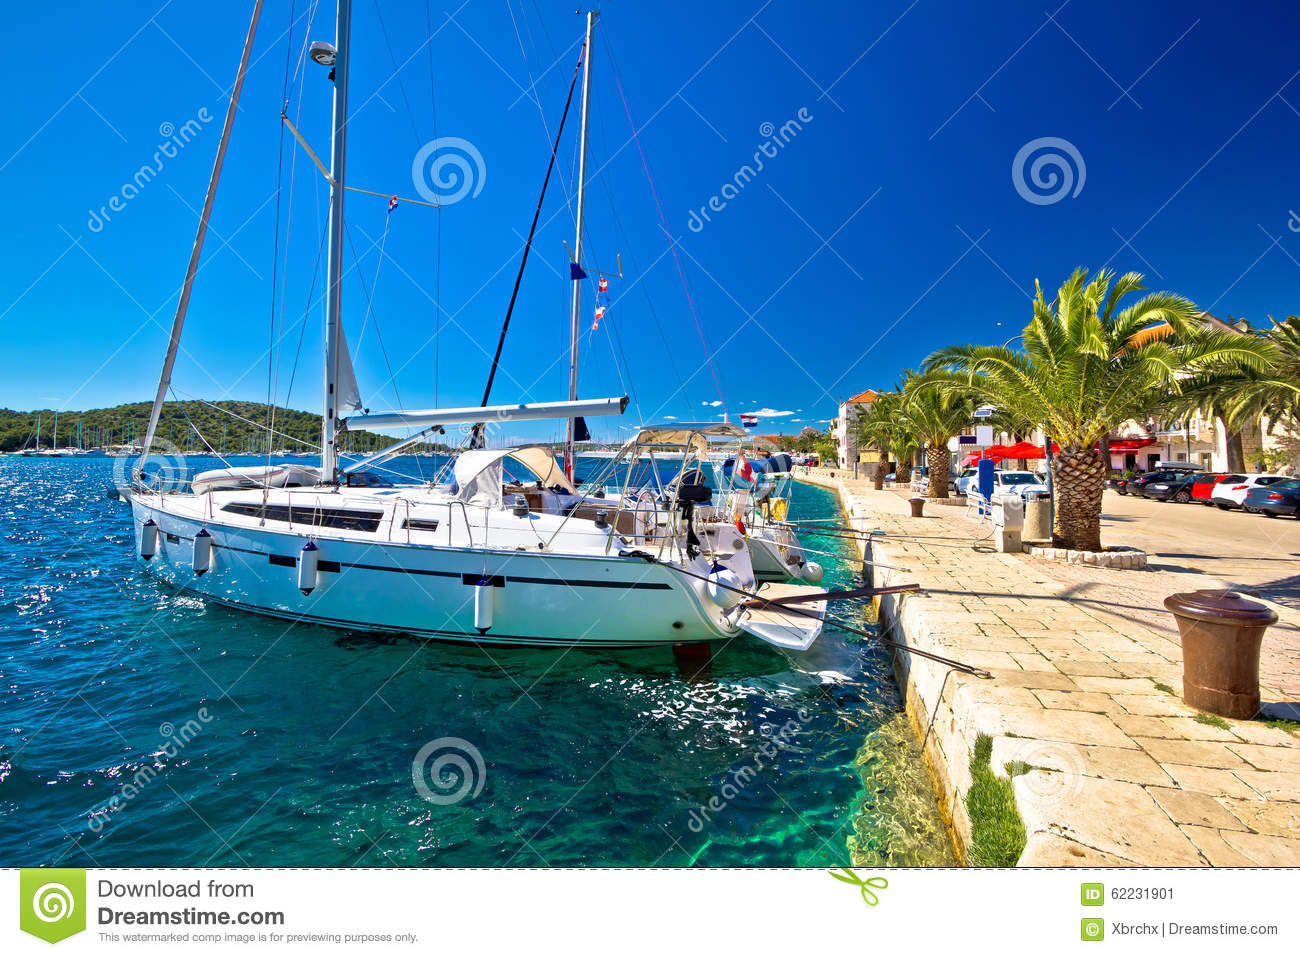 Amazing Rogoznica Sailing Destination Waterfront Stock Photo.